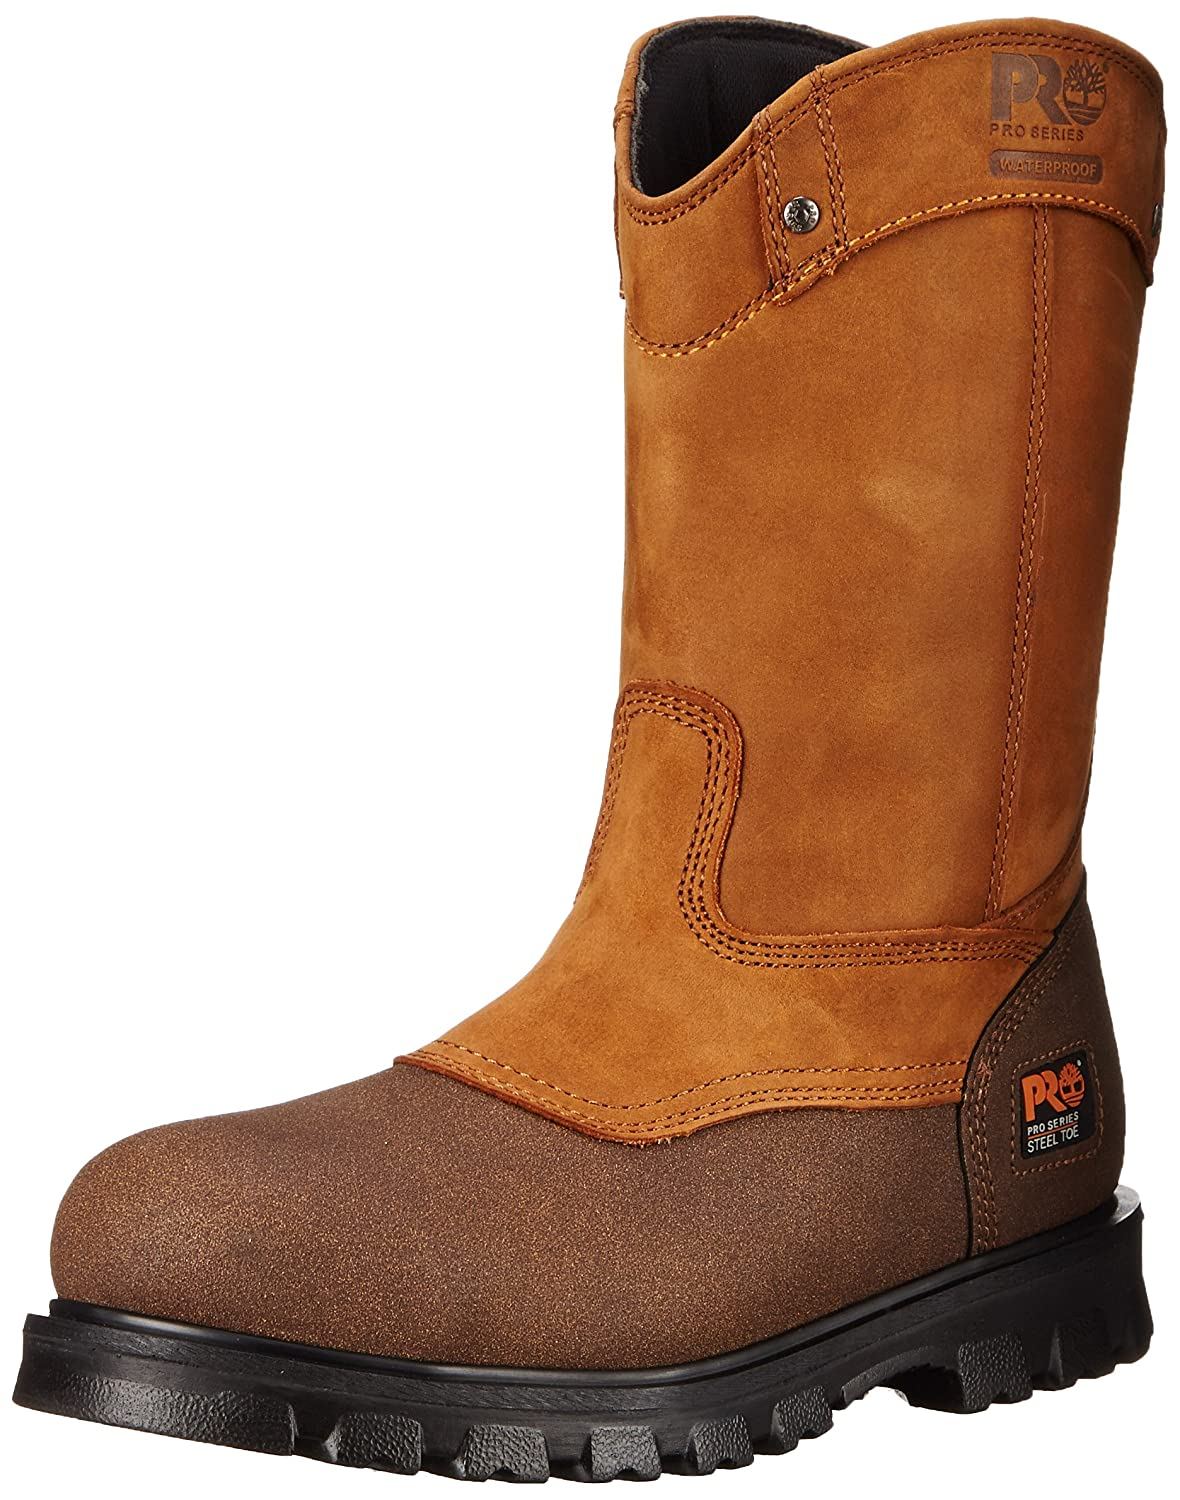 Timberland PRO メンズ Wheat Bandit 14 D(M) US 14 D(M) USWheat Bandit B003K35748